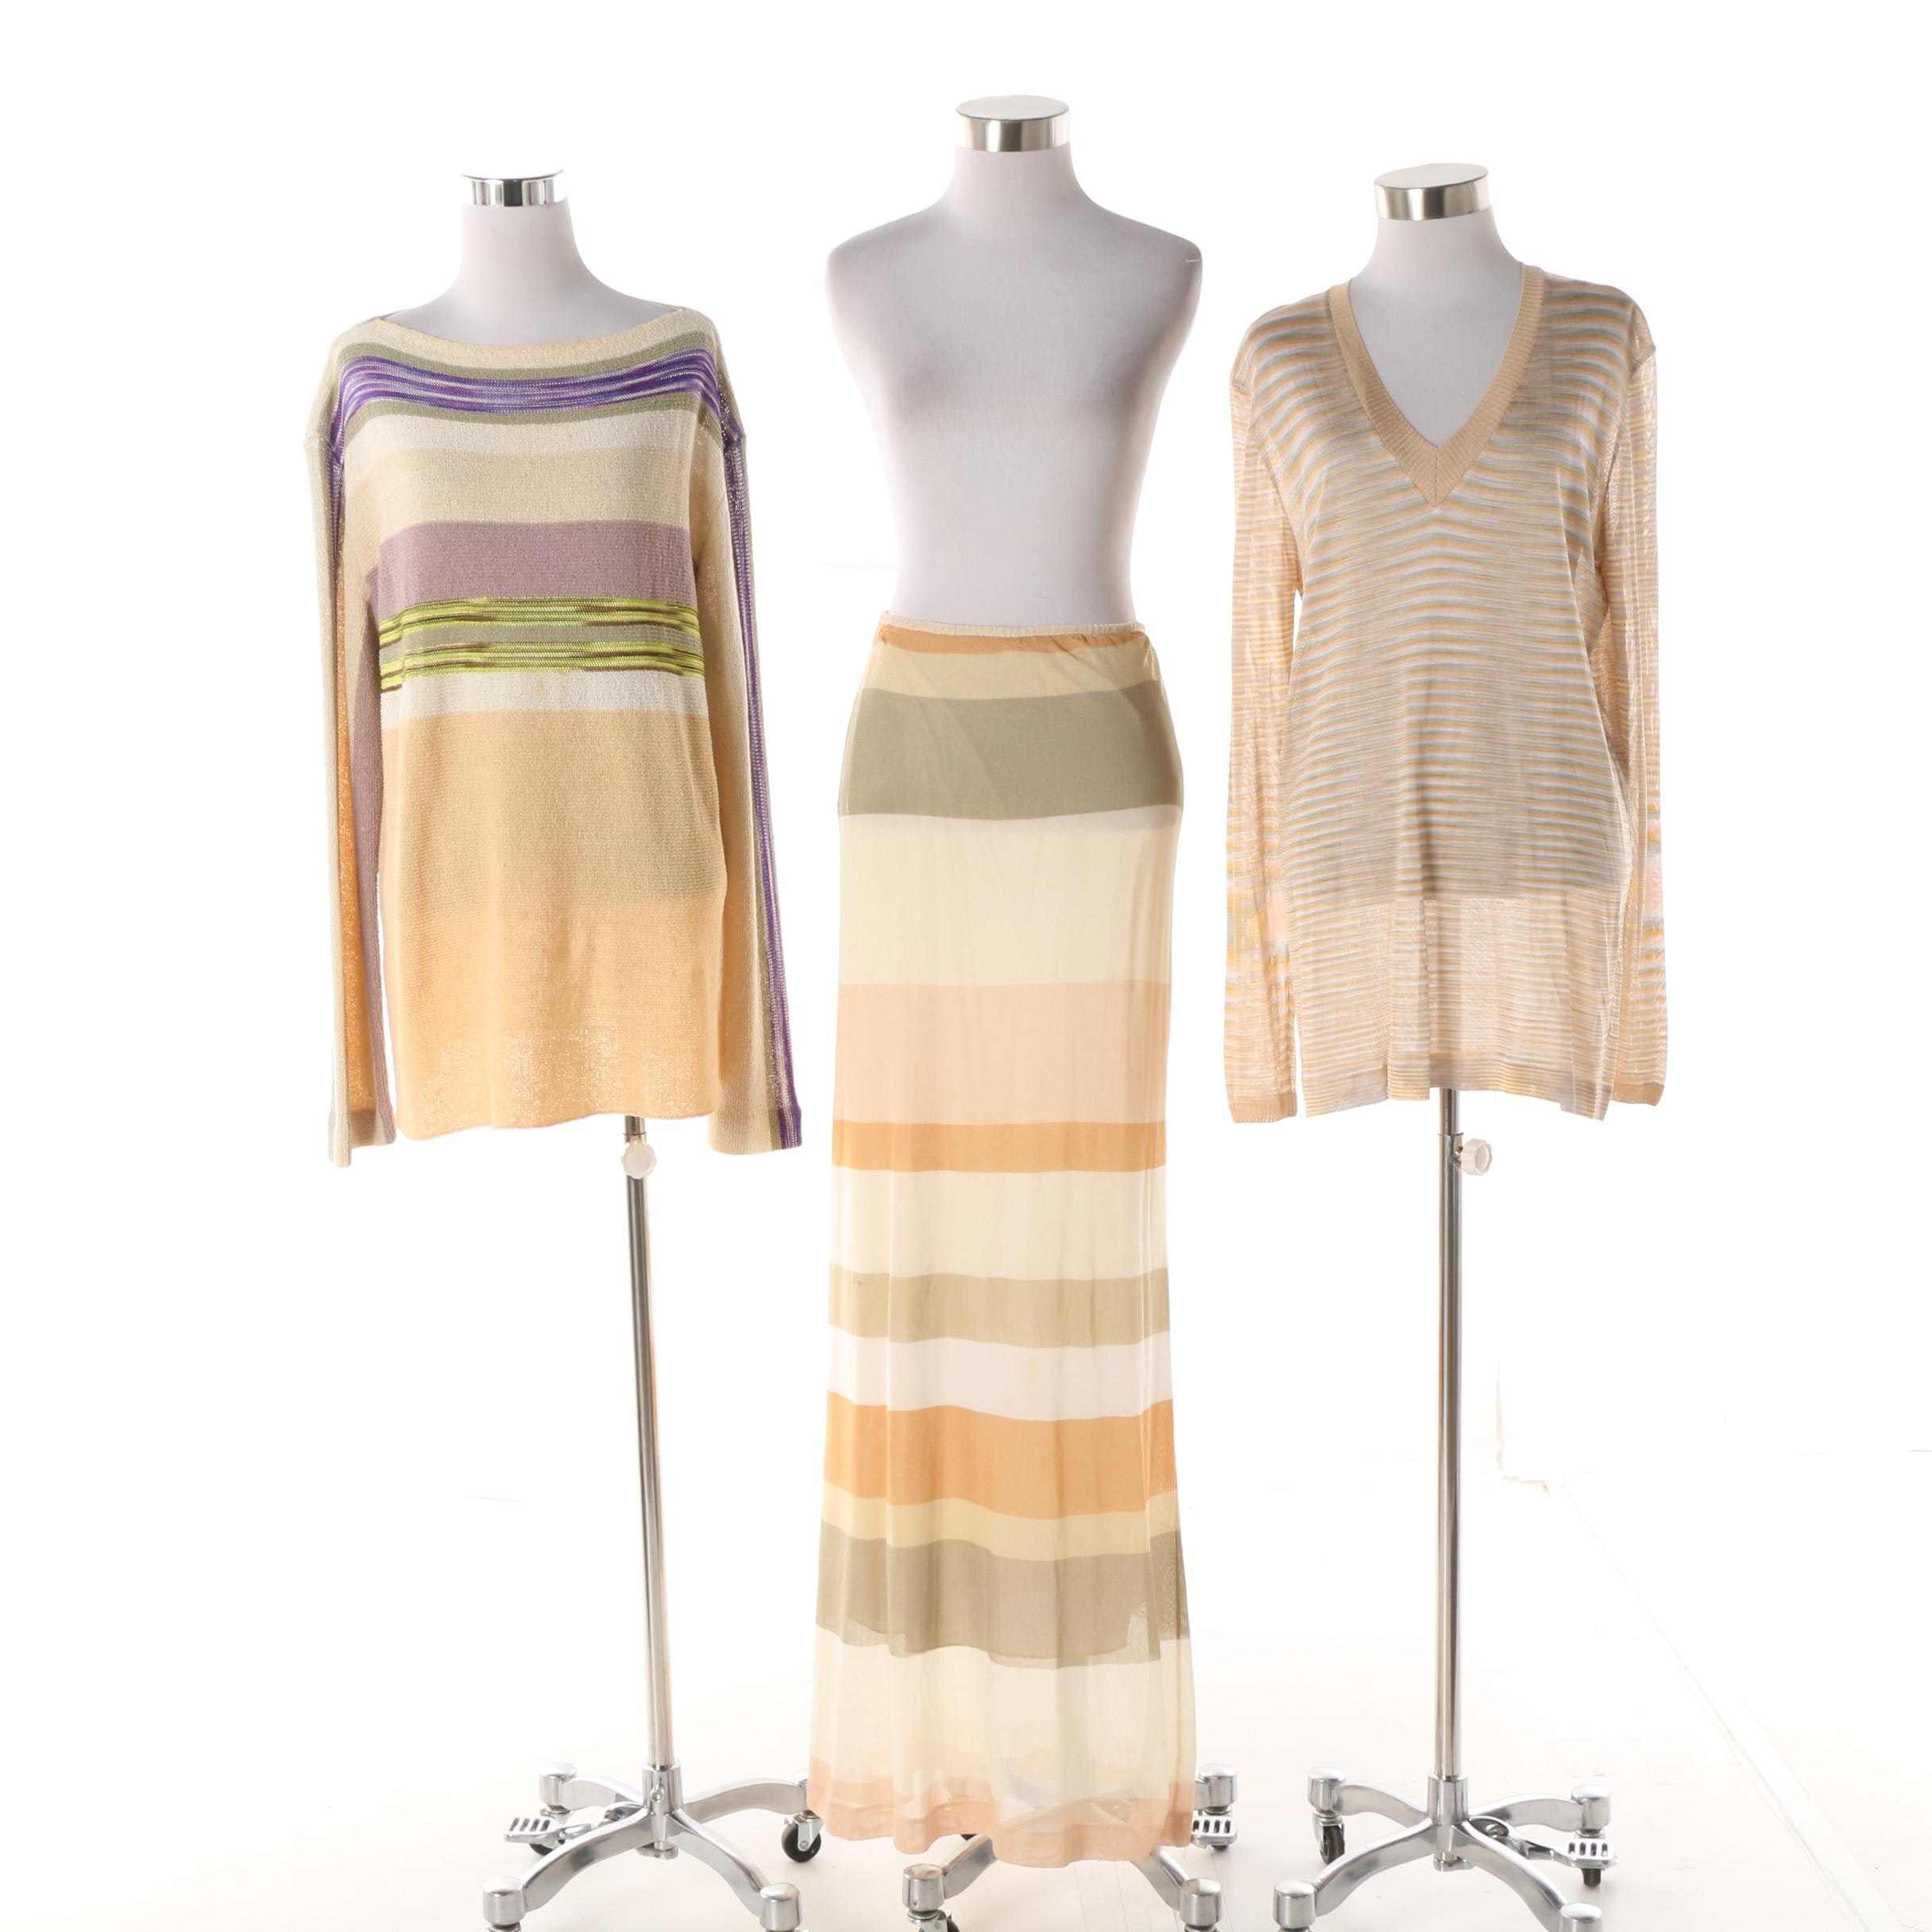 Women's Missoni Knit Tops and Skirt